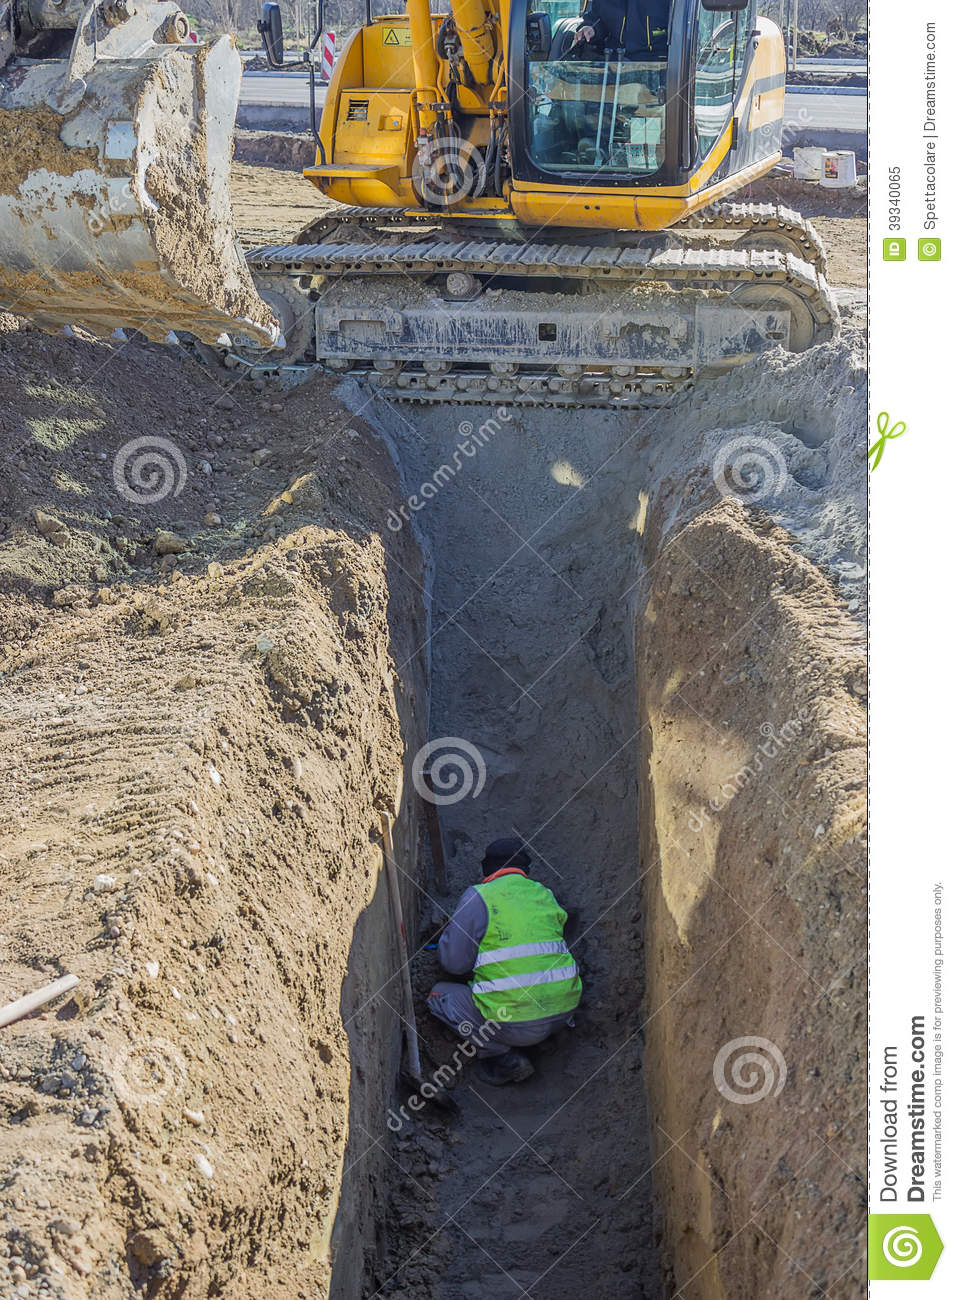 Worker working in trench 3